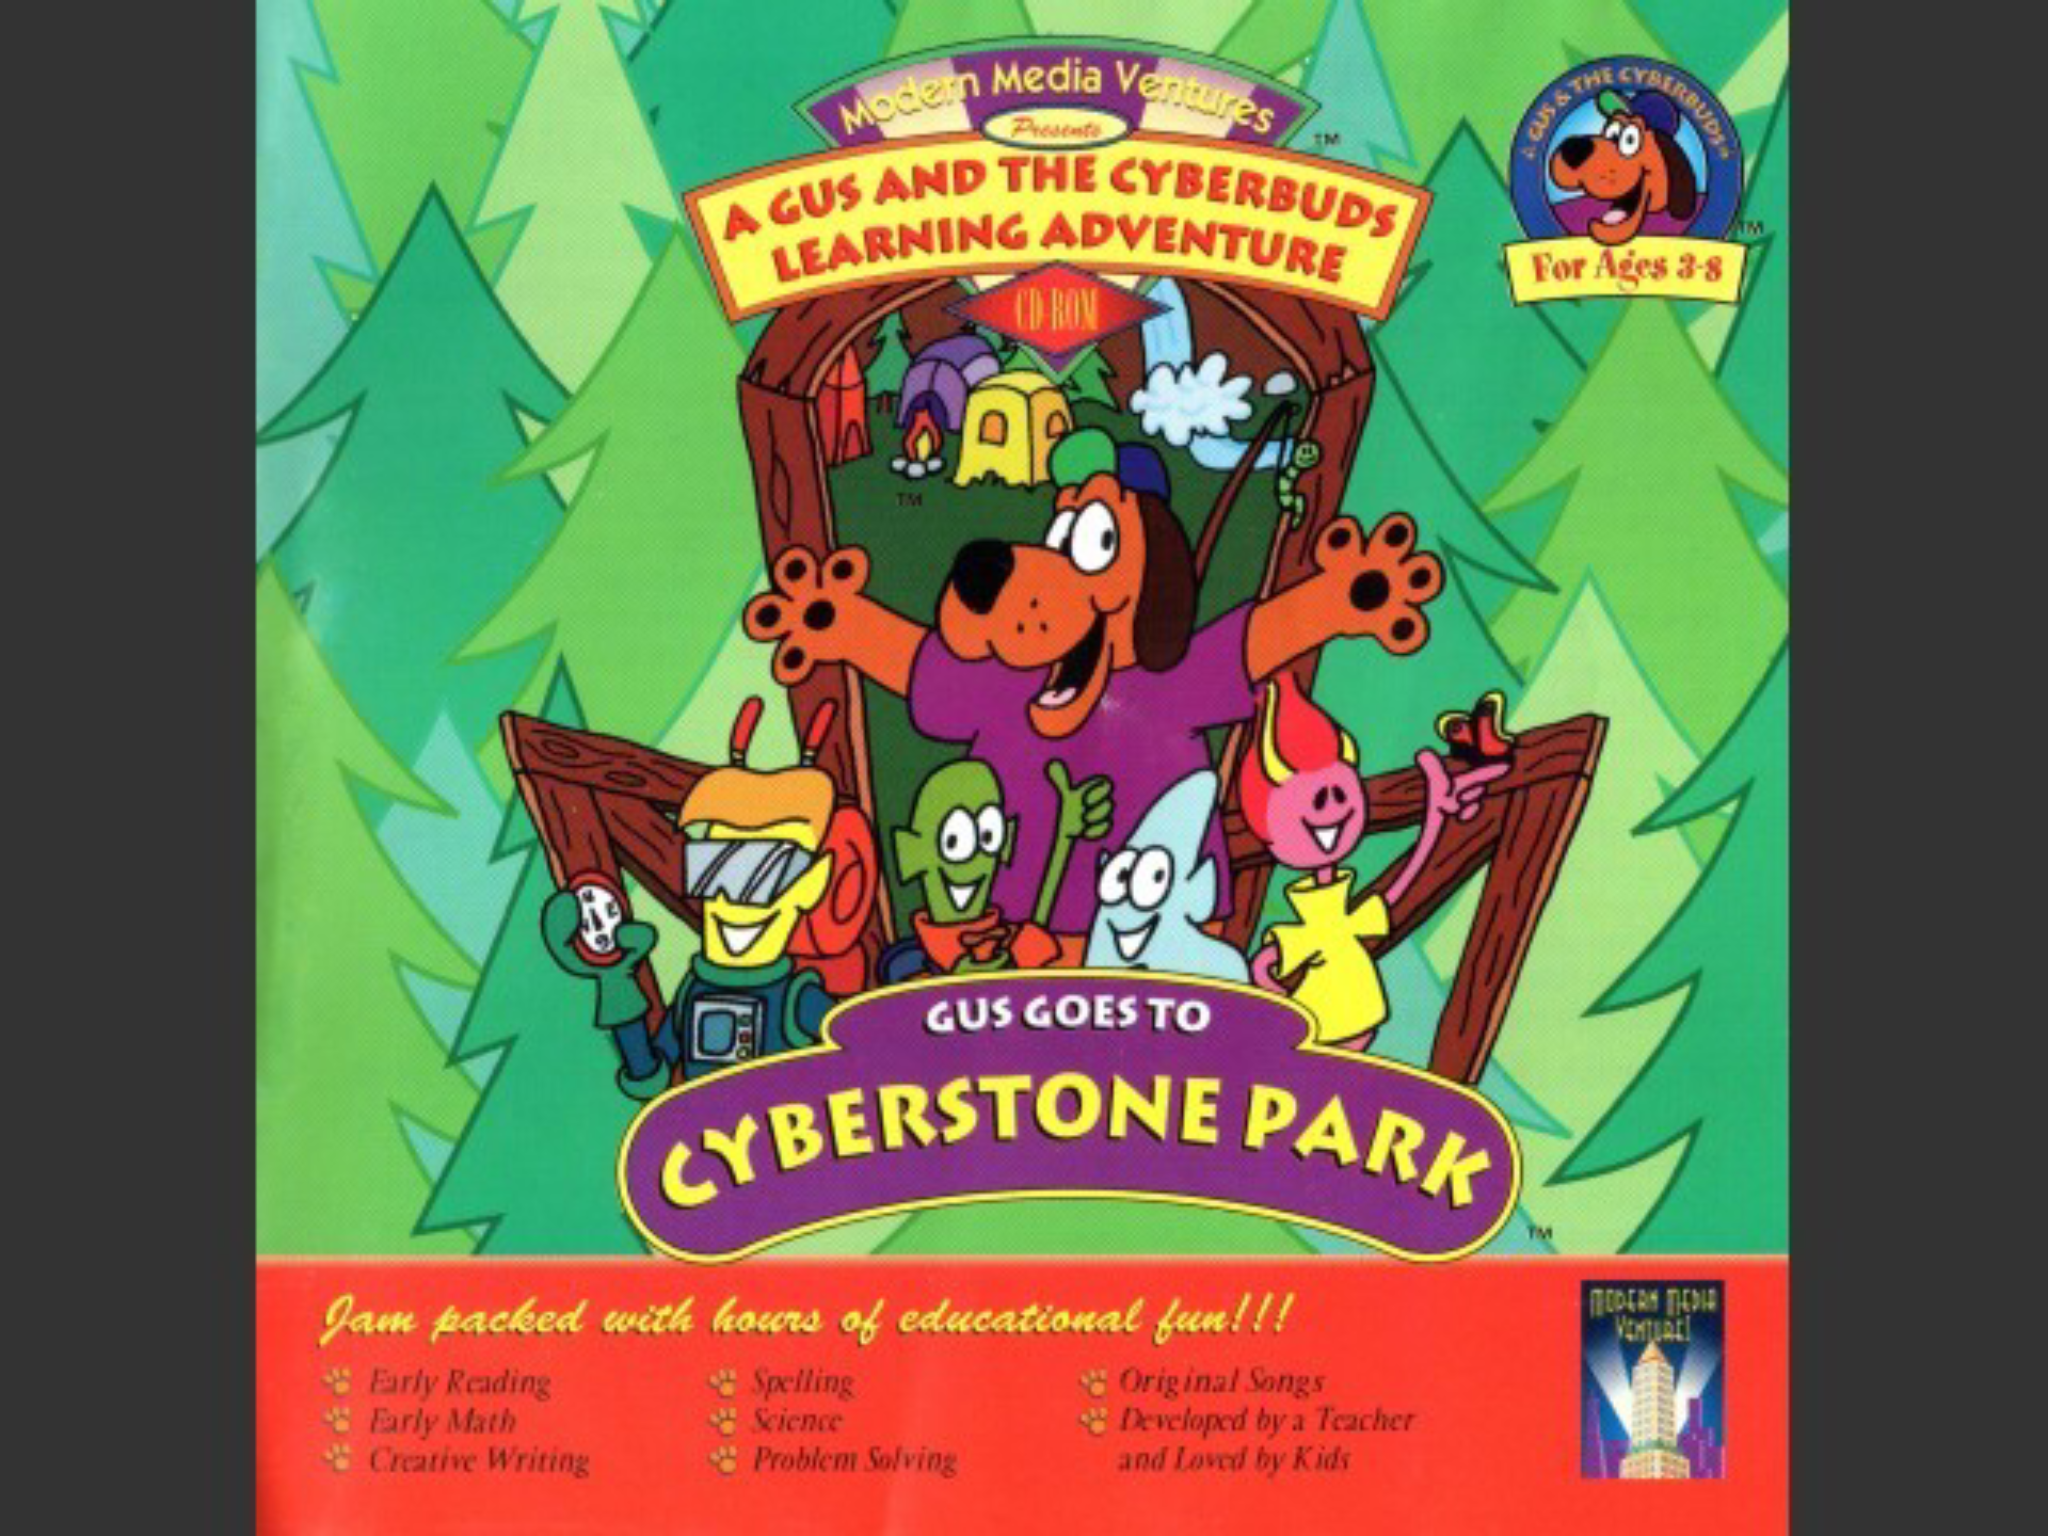 Gus Goes to Cyberstone Park